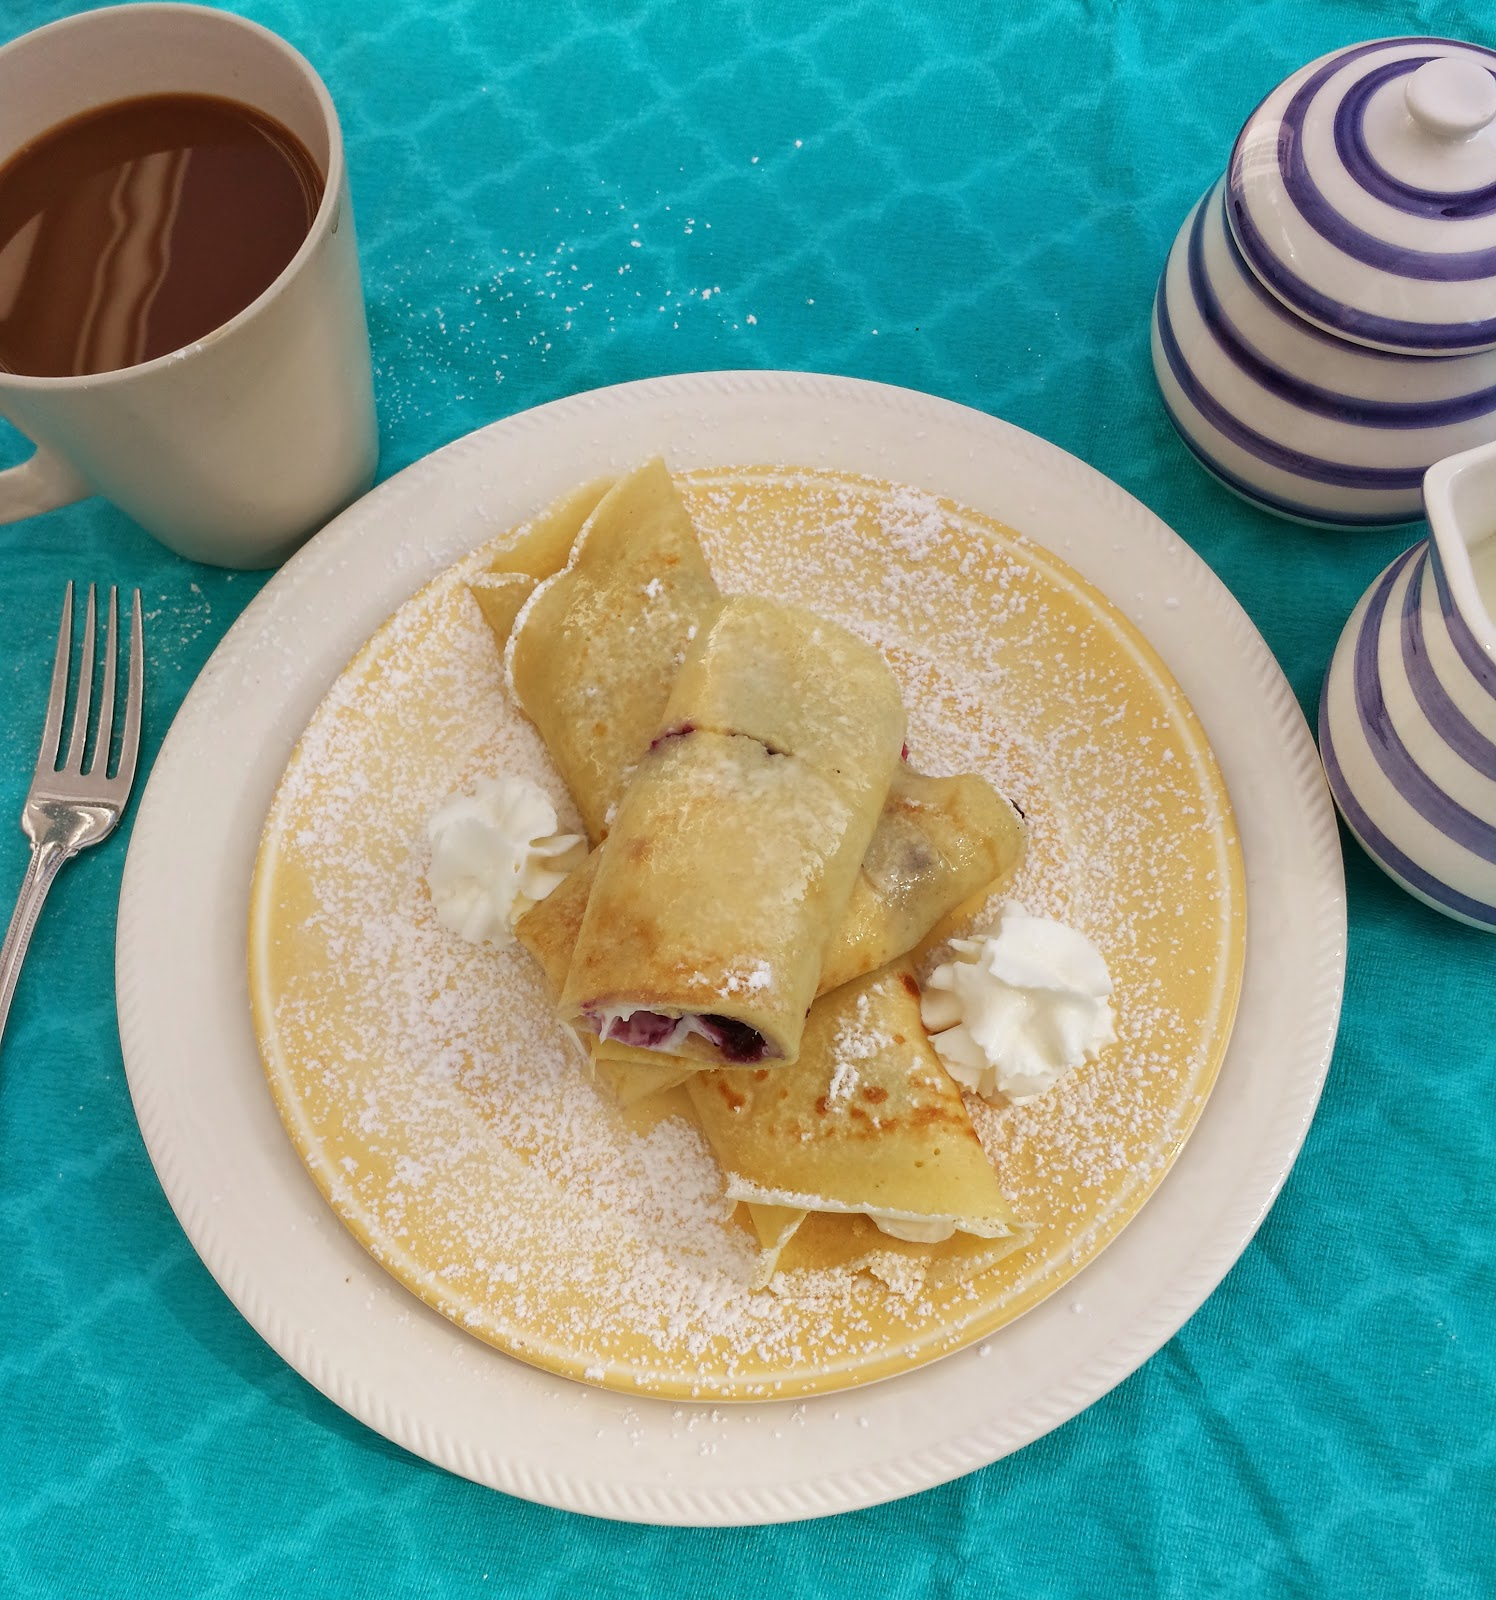 blueberry cream filled crepes with a cup of coffee